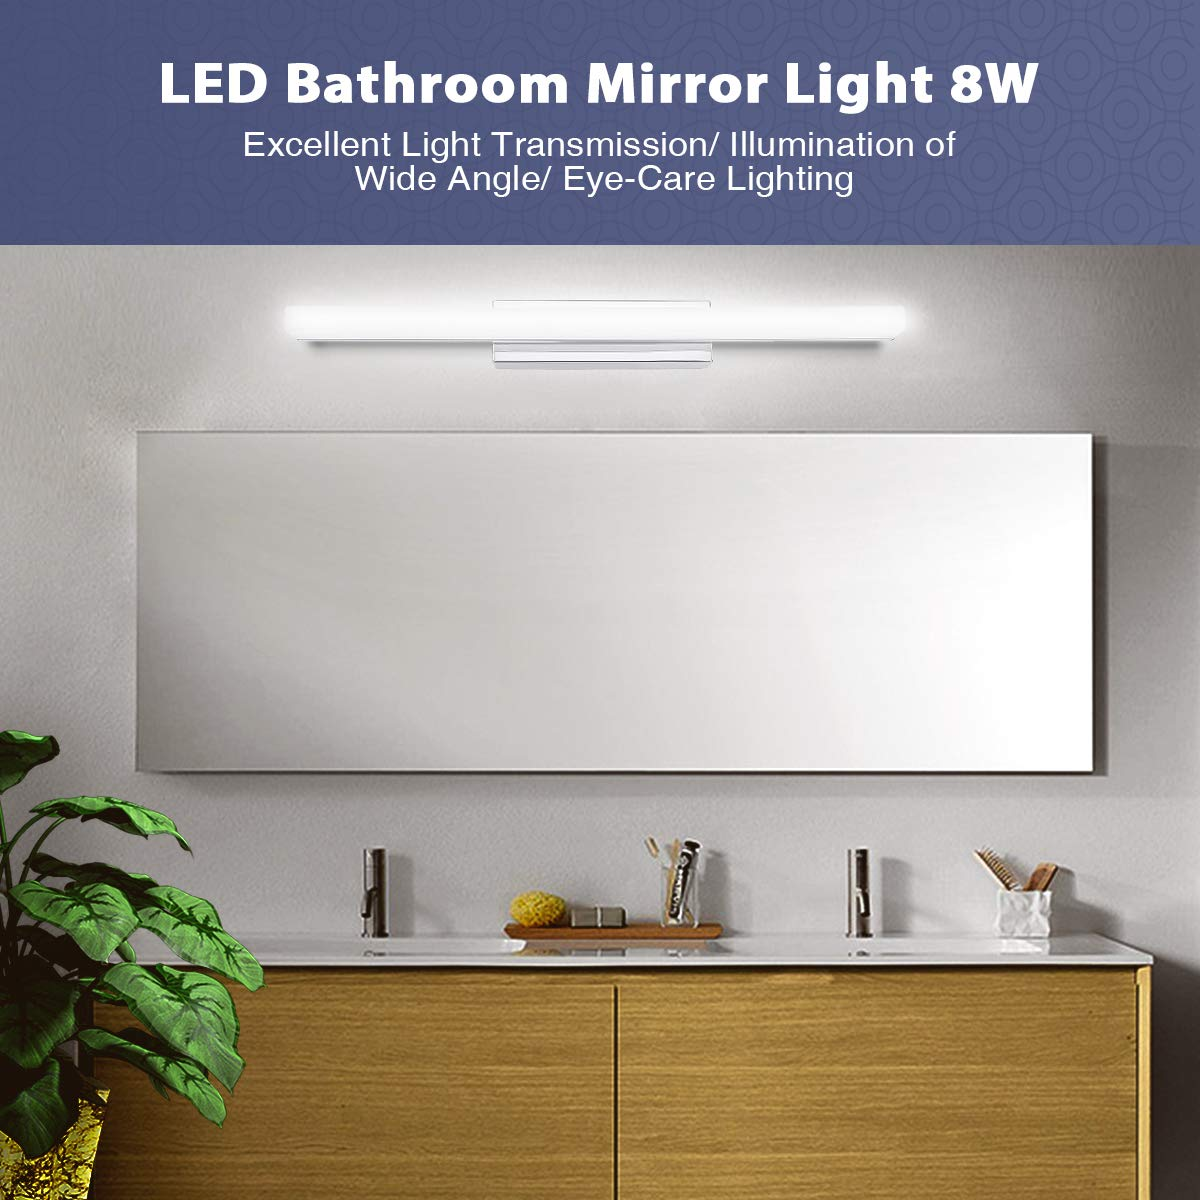 LED Mirror Light SOLMORE Bathroom Makeup Front Lighting Mirror Headlight Energy-Saving Wall Lamp 8W|40CM|IP44|6000K|700LM|Stainless Steel Base for Bathroom Mirror Cabinet Picture Wall Vanity